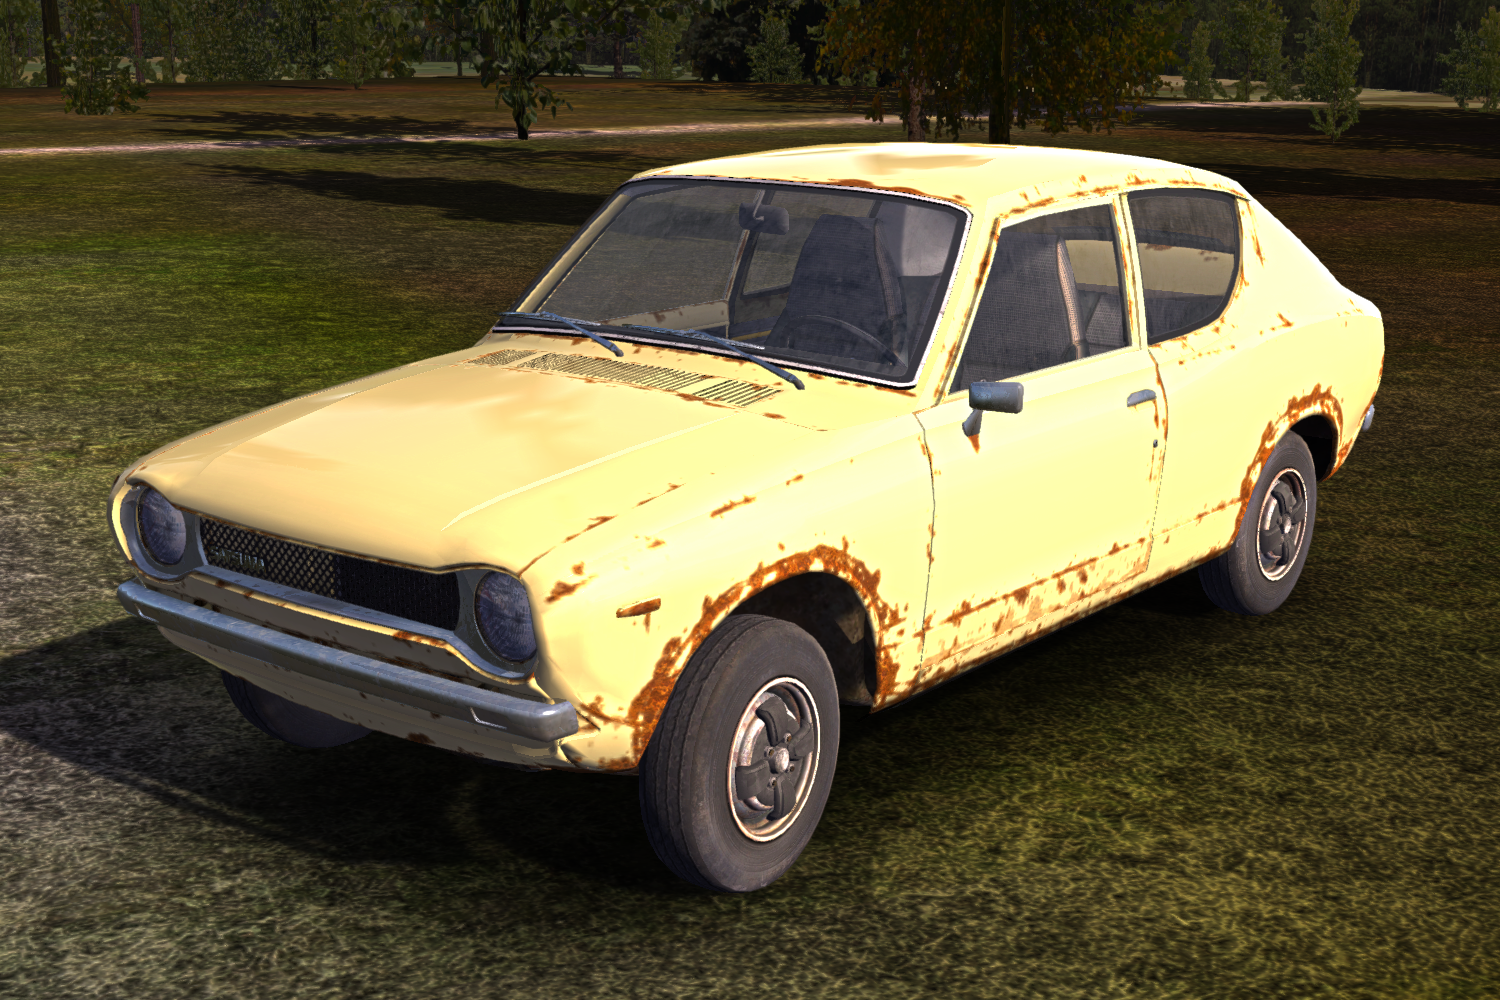 Satsuma/Troubleshooting | My Summer Car Wikia | FANDOM powered by Wikia